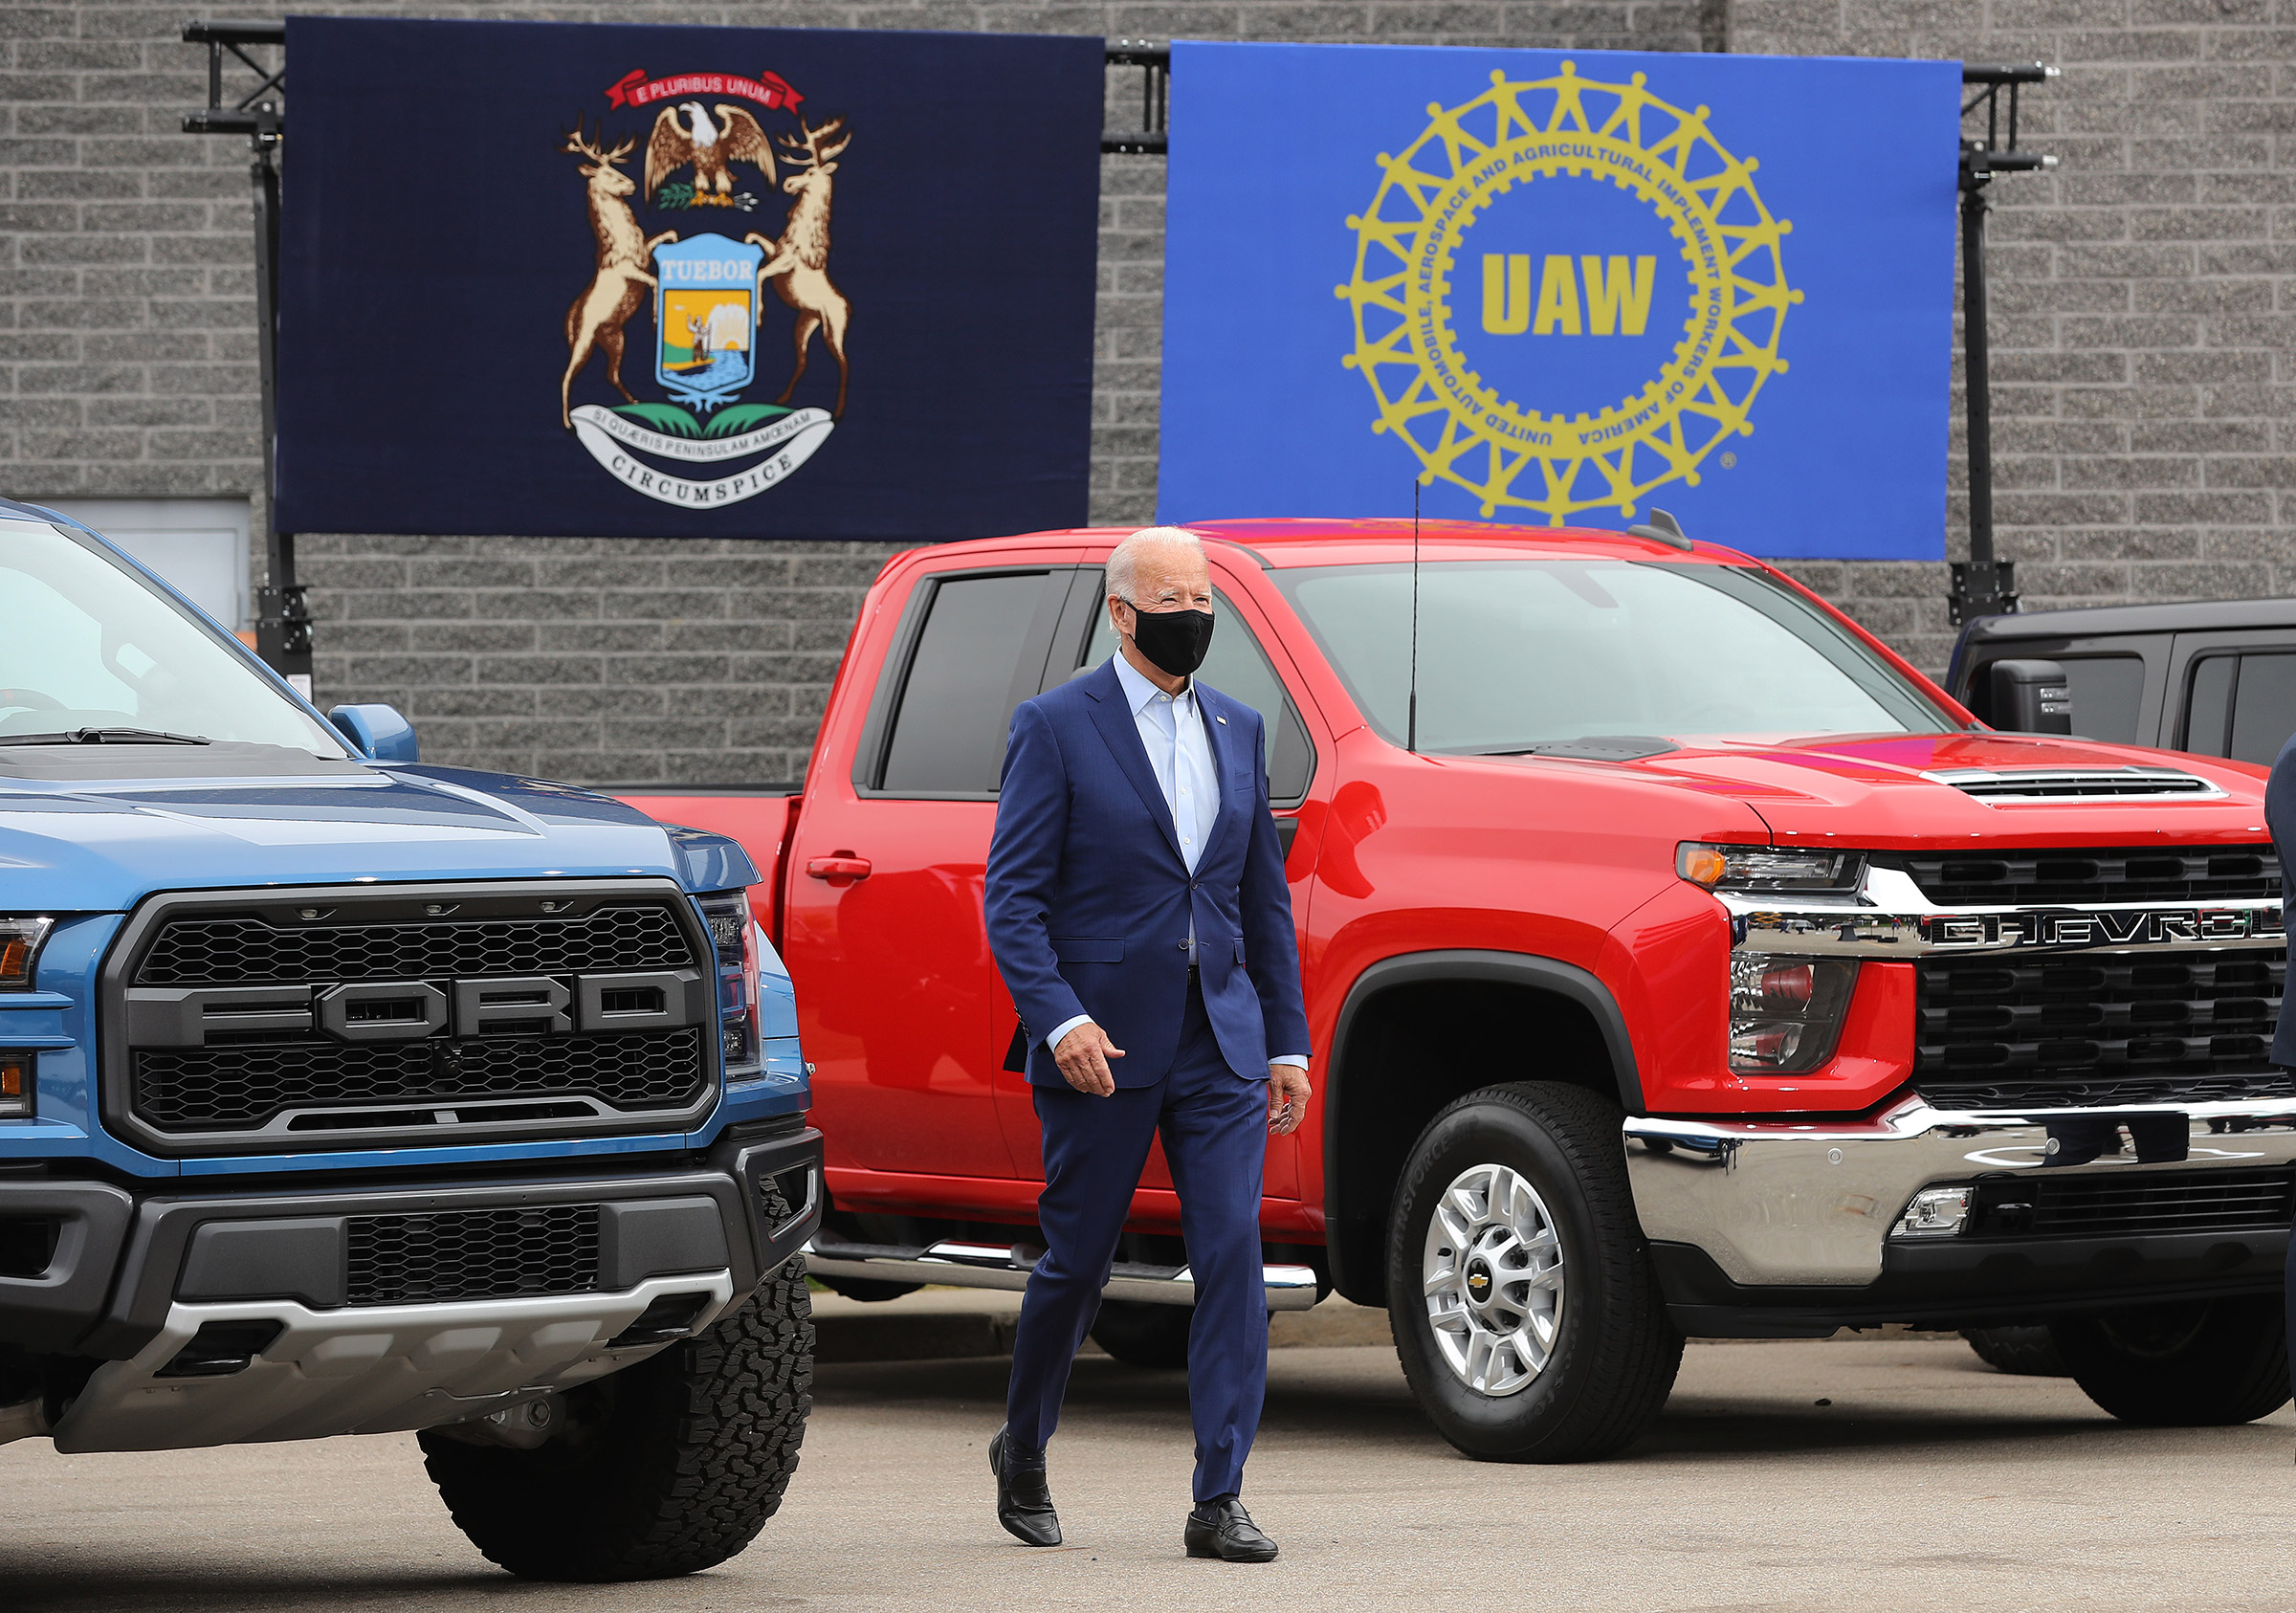 Democratic presidential nominee and former Vice President Joe Biden walks out in between pickup trucks before delivering remarks in the parking lot outside the United Auto Workers Region 1 offices in Warren, Mich., on Sept. 09, 2020.